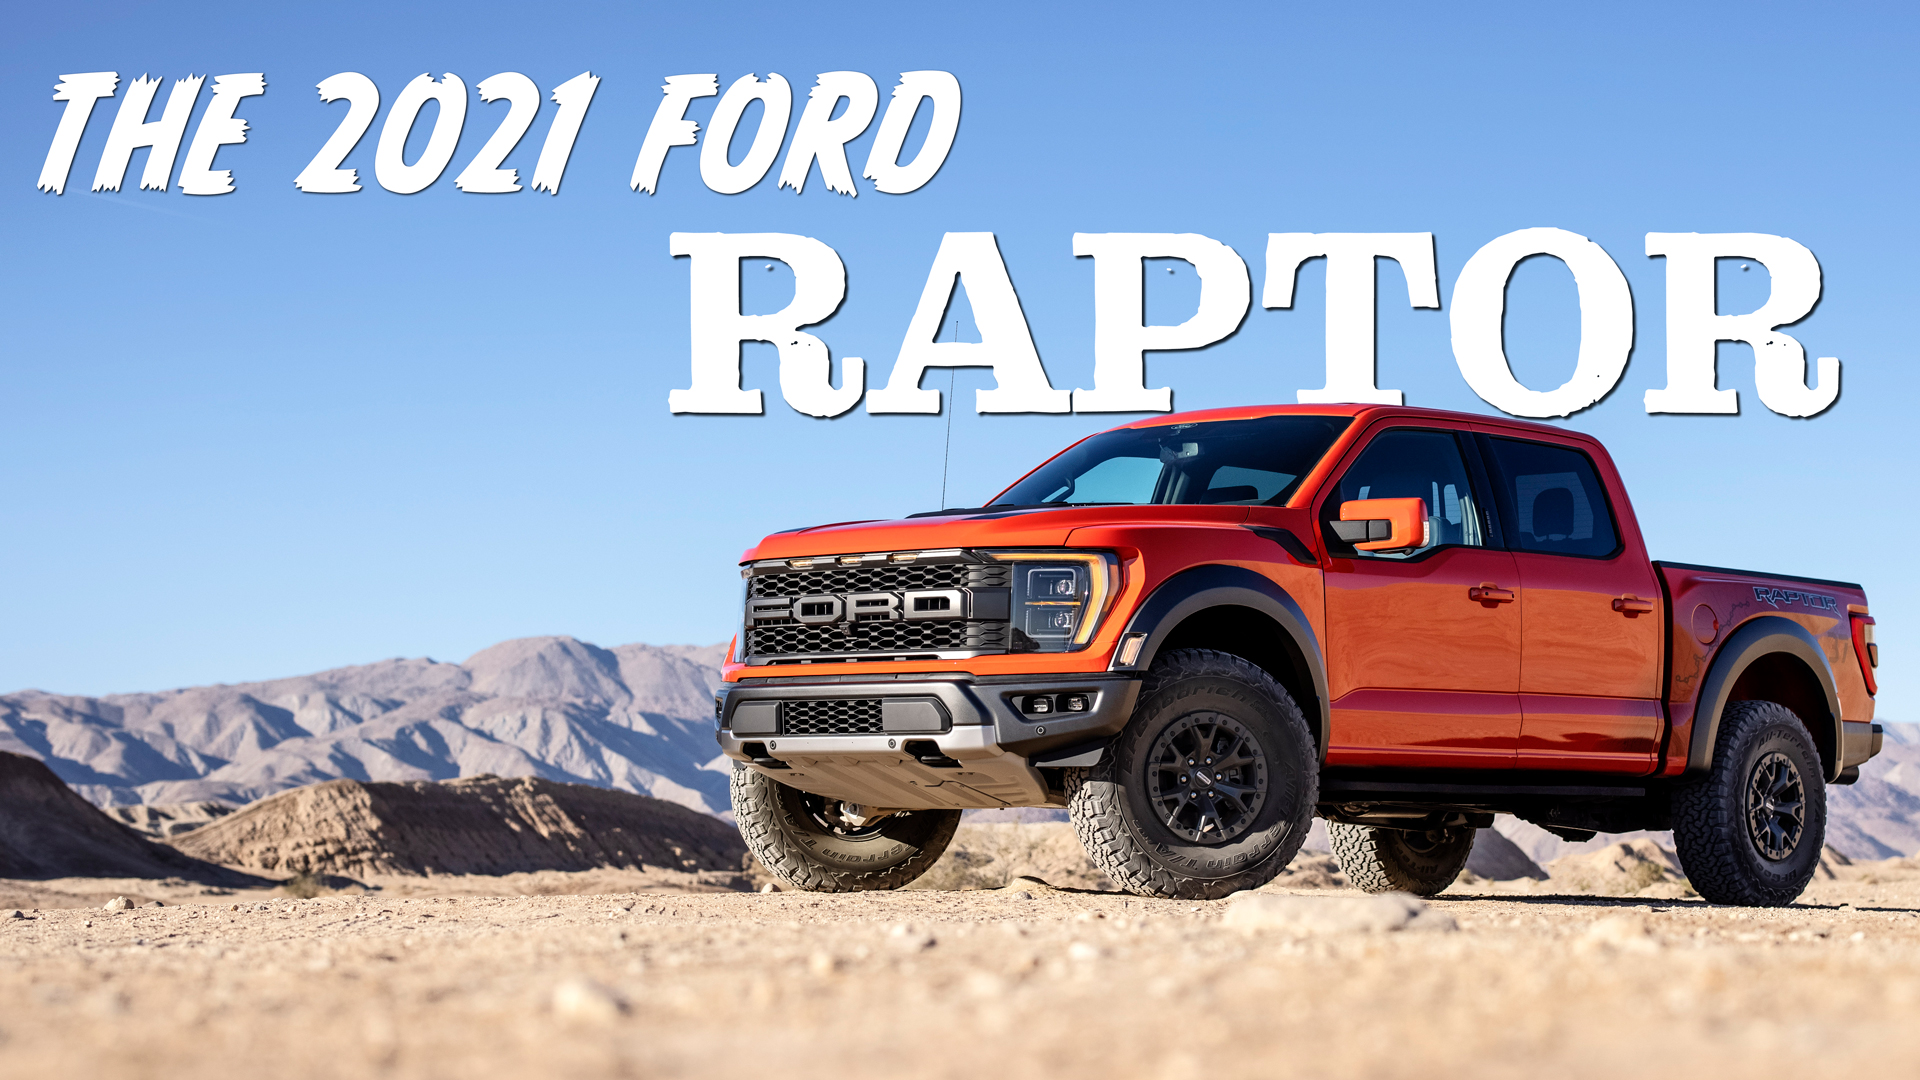 2021 ford raptor is all new